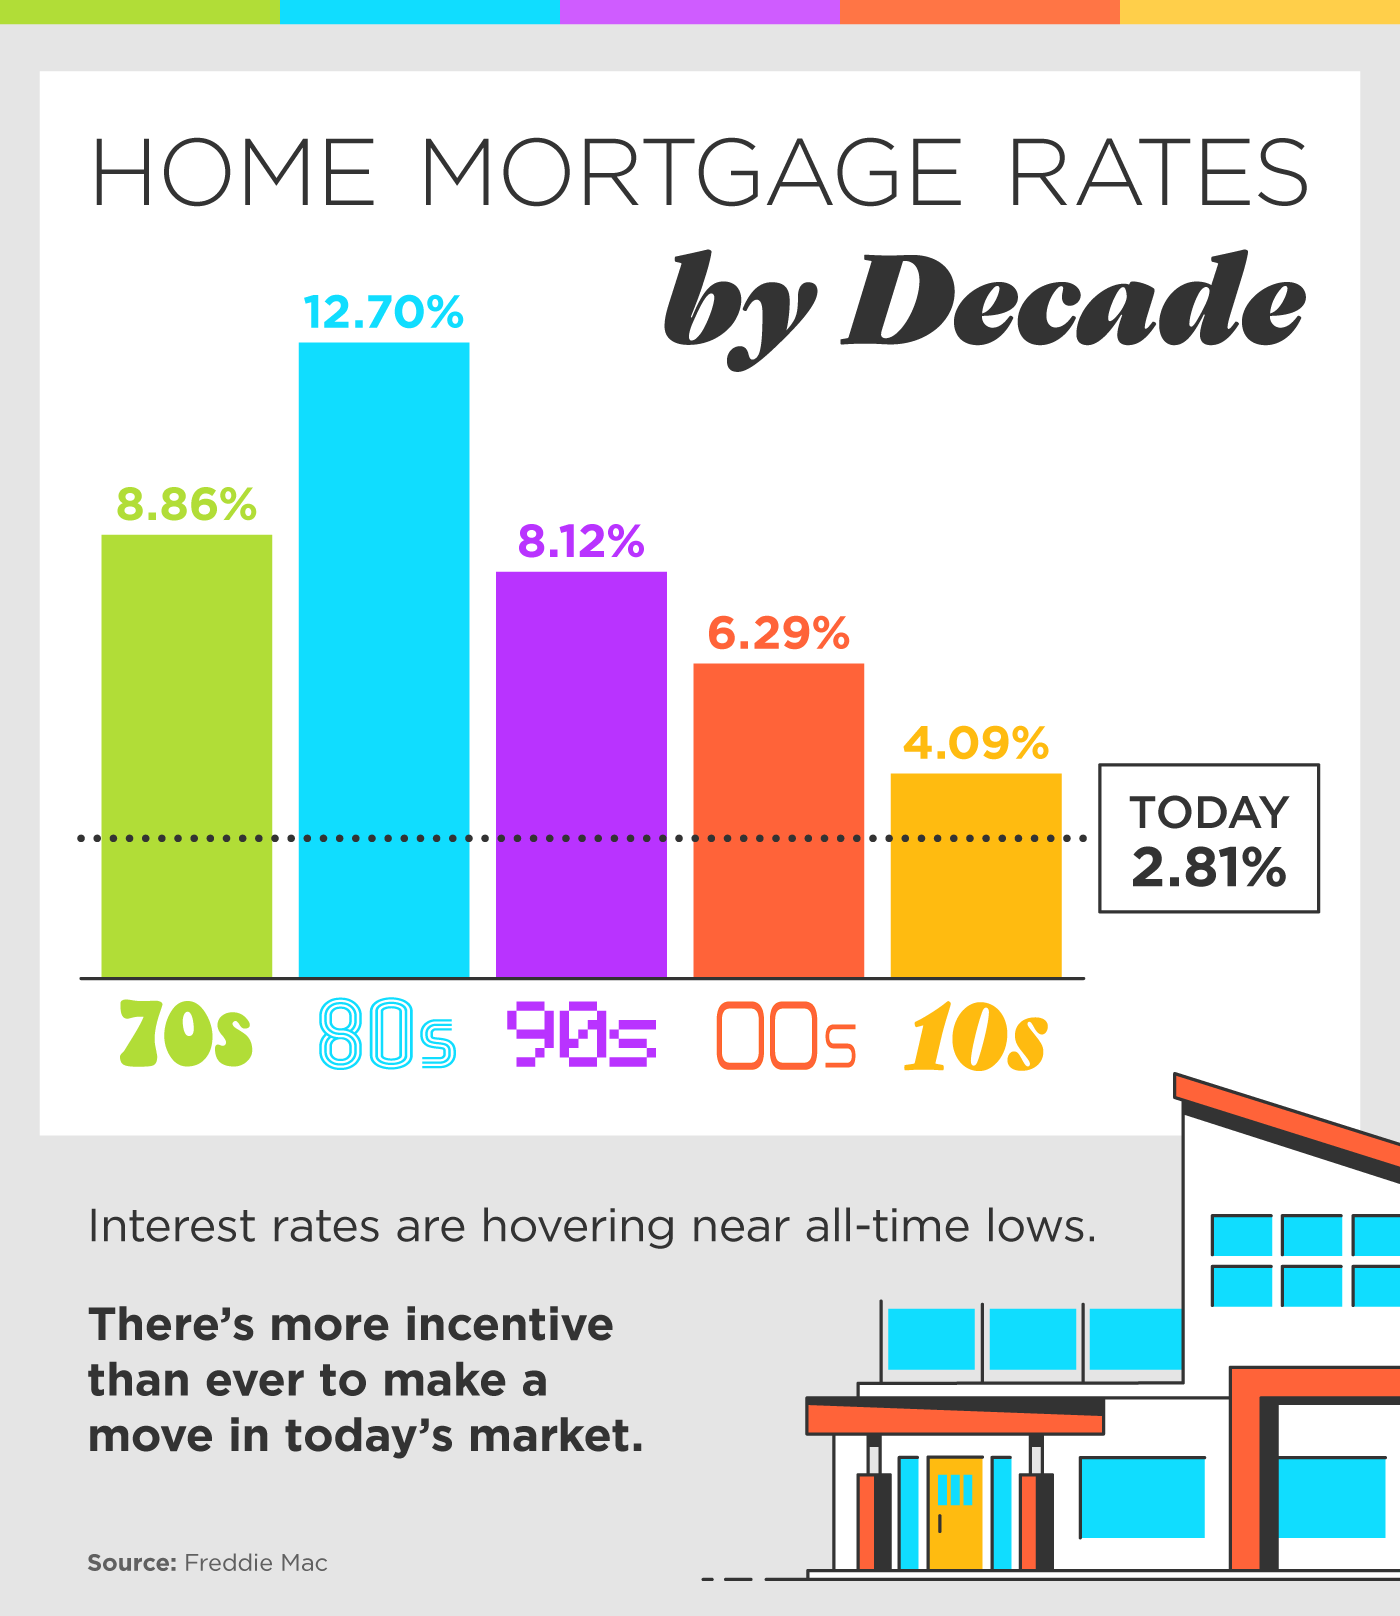 Home Mortgage Rates by Decade.png